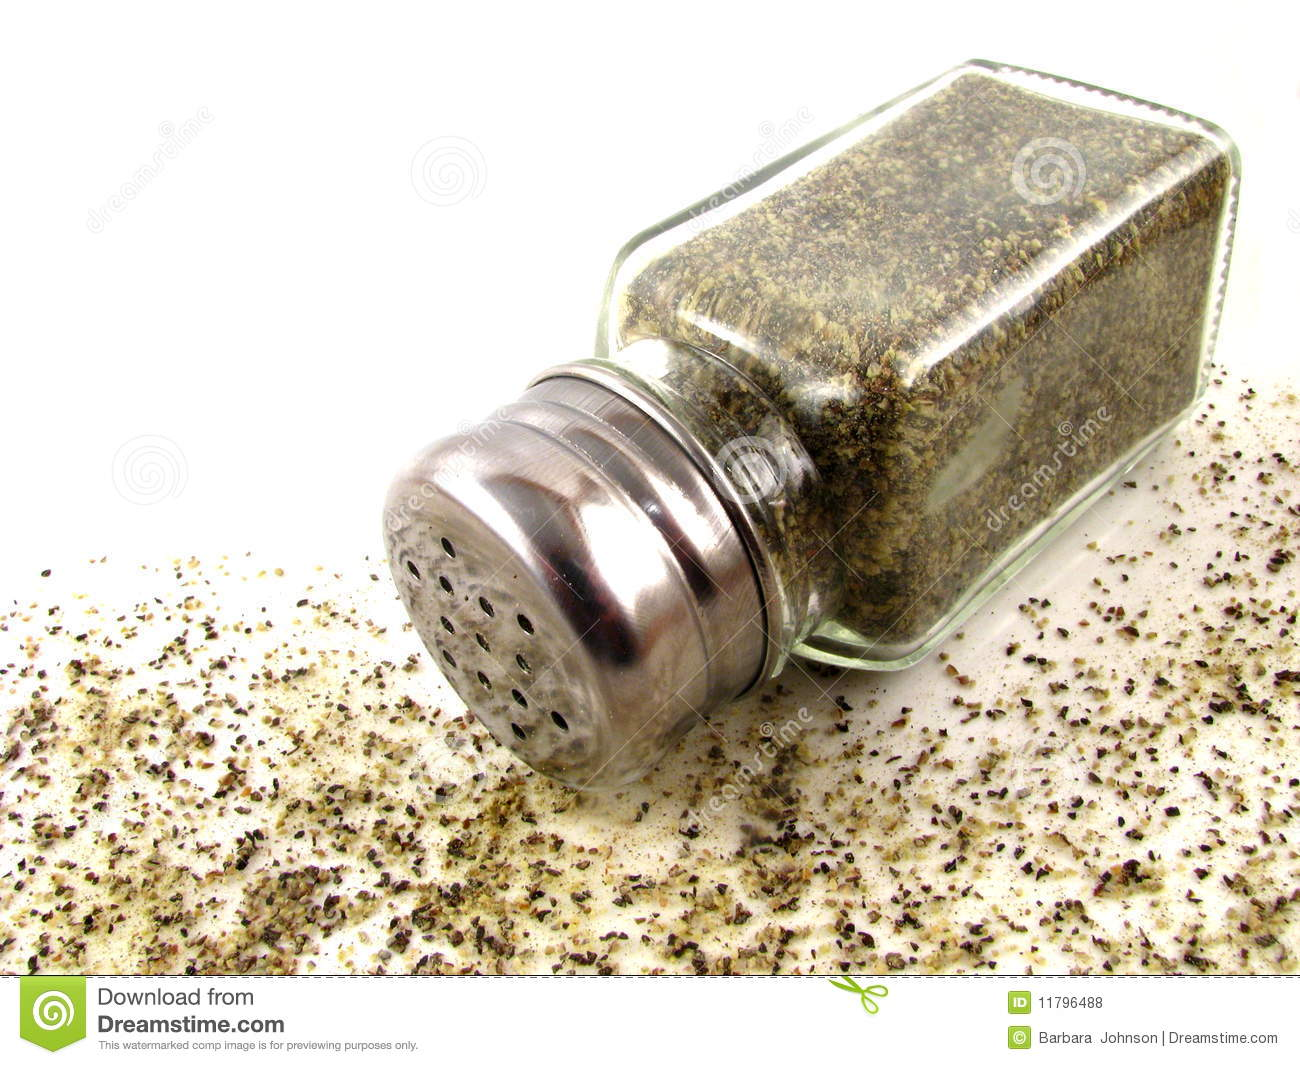 Glass pepper shaker with spilled ground black pepper on a white ...